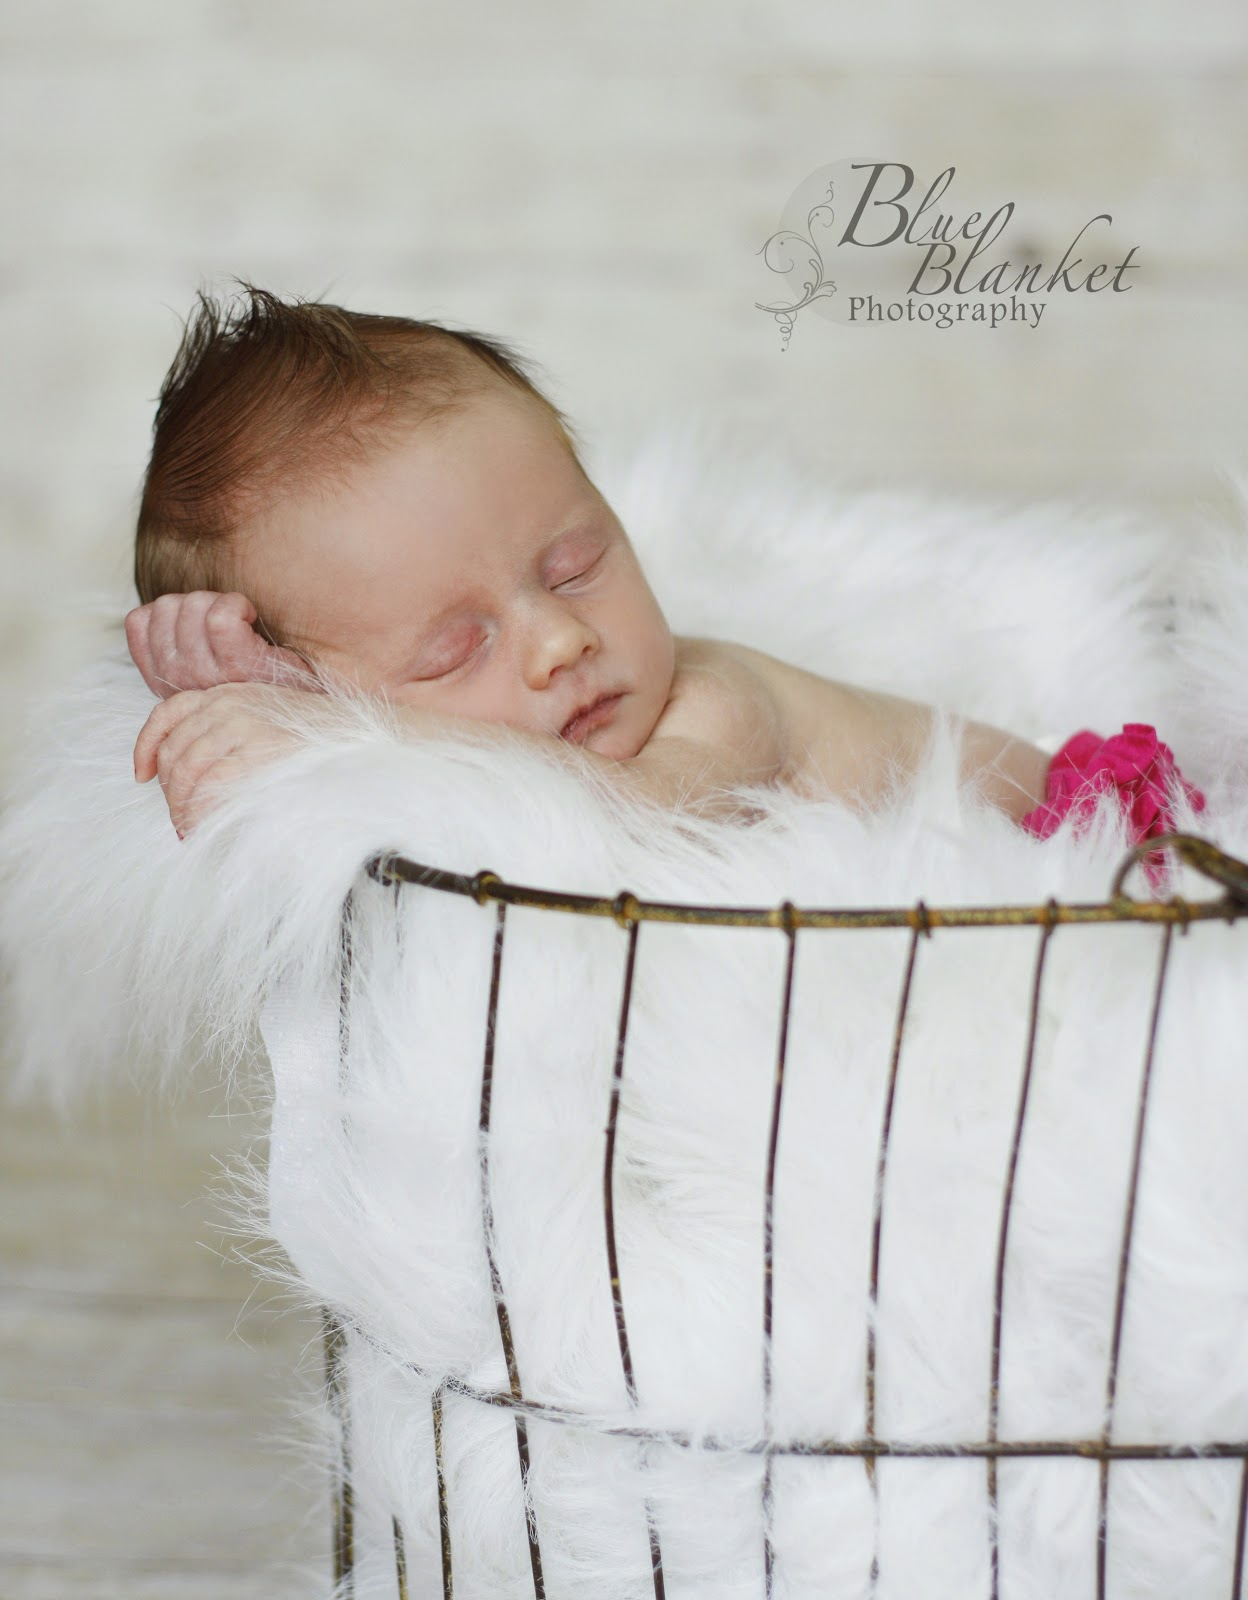 Lauren Rutherford Photography Blog » Newborn, family and Blankets for newborn photography